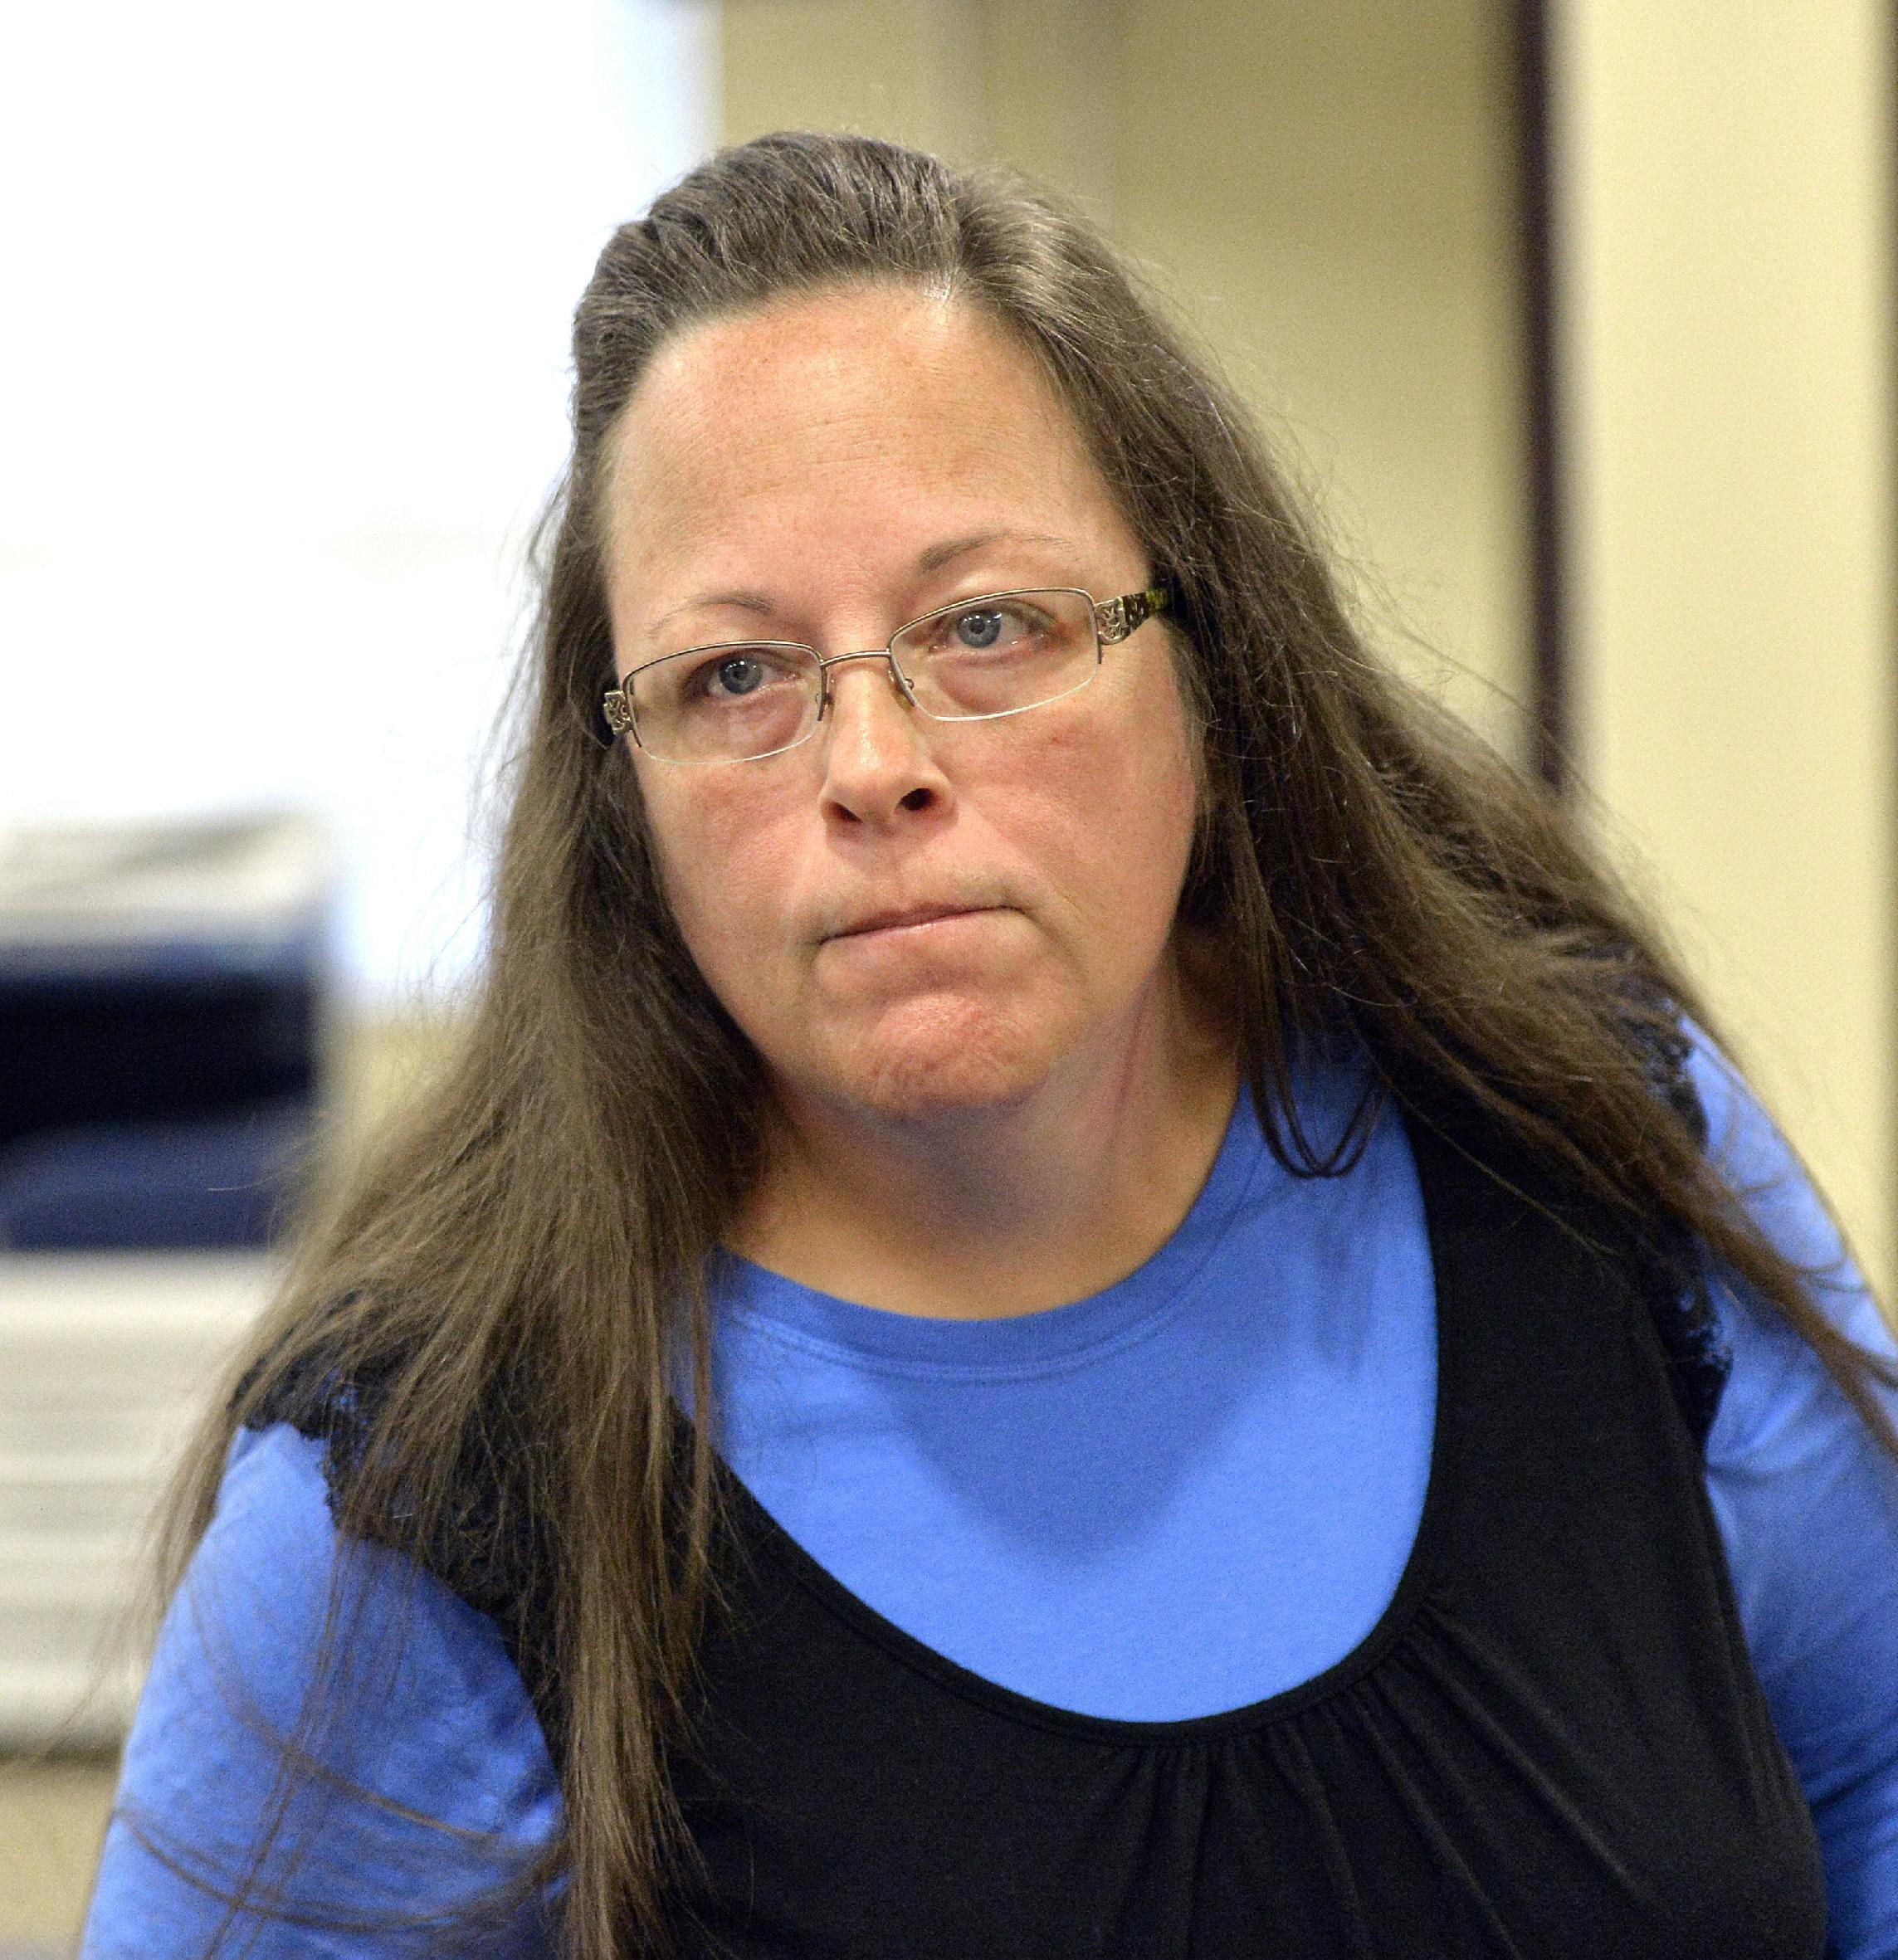 Clerk in gay marriage fight once unlikely to wage moral war